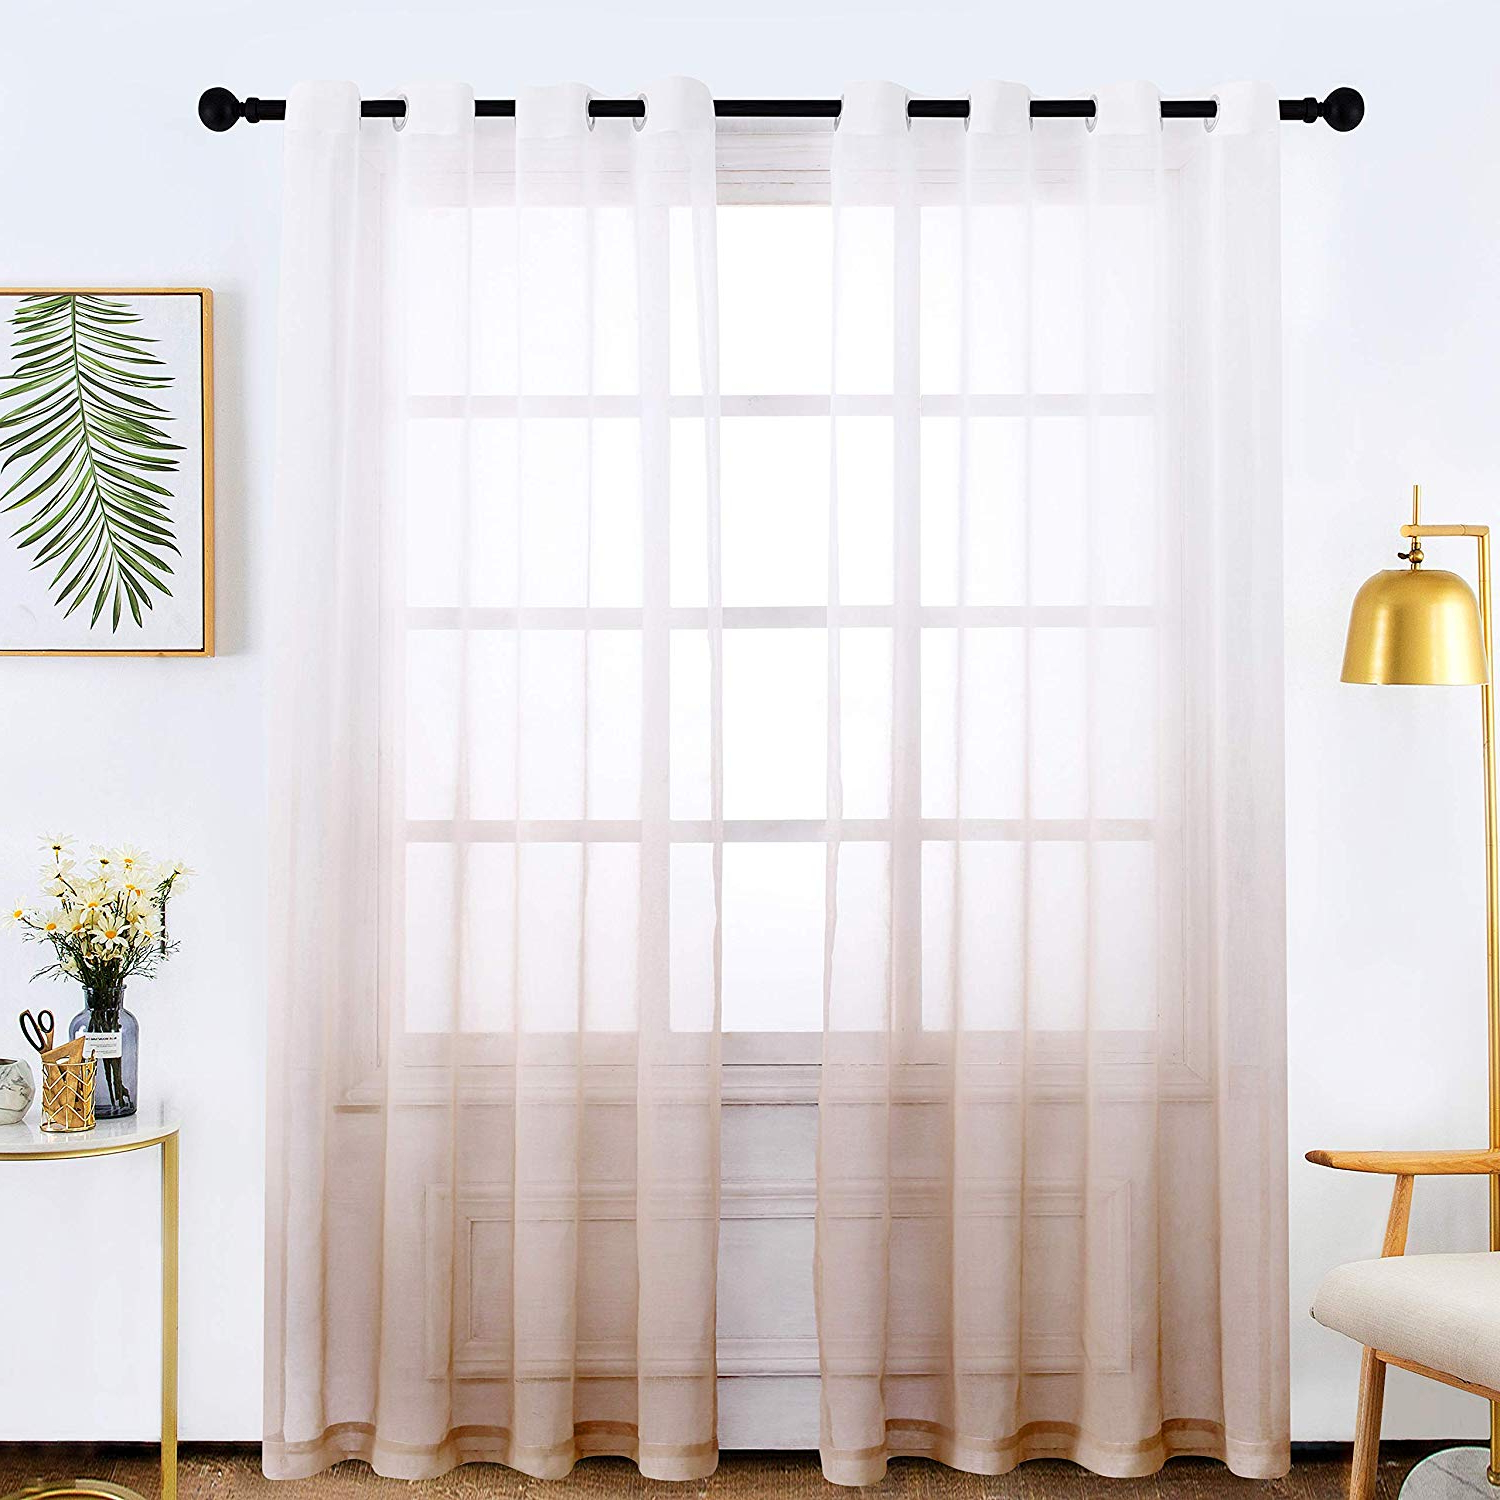 Ombre Faux Linen Semi Sheer Curtains Inside Most Popular Bermino Faux Linen Sheer Curtains Voile Grommet Ombre Semi Sheer Curtains  For Bedroom Living Room Set Of 2 Curtain Panels 54 X 84 Inch Light Brown (View 12 of 20)